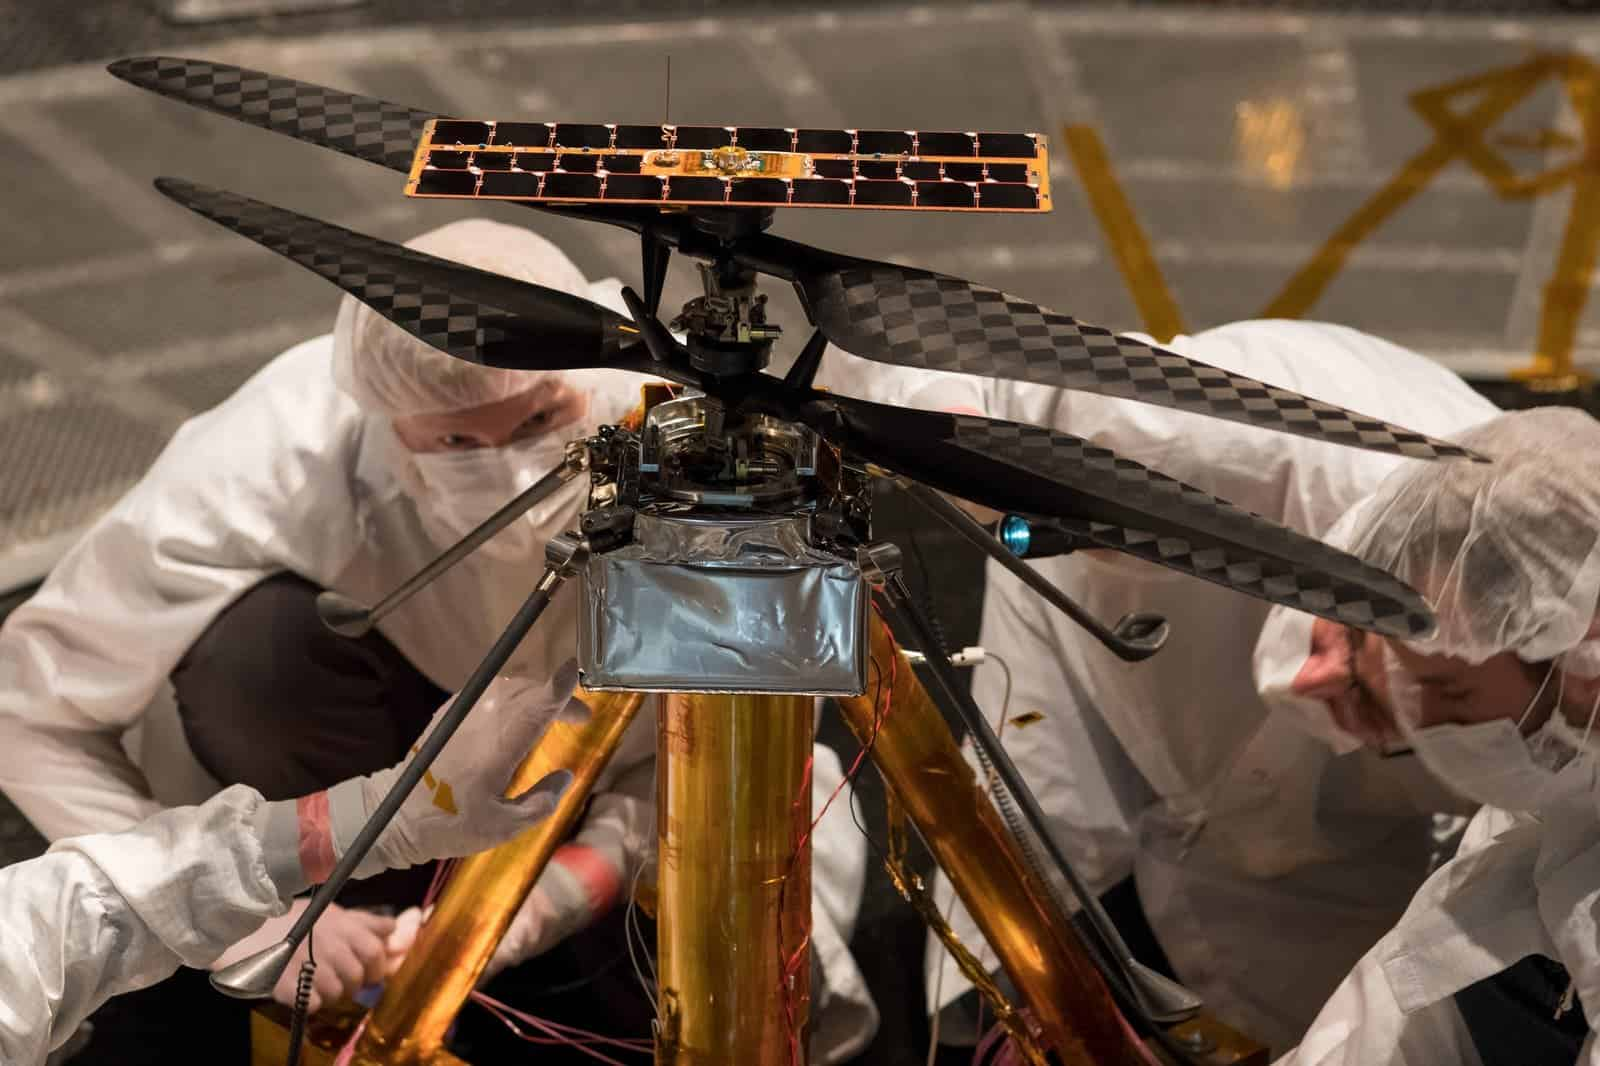 NASA's space helicopter is one month away from landing on Mars - ZME Science